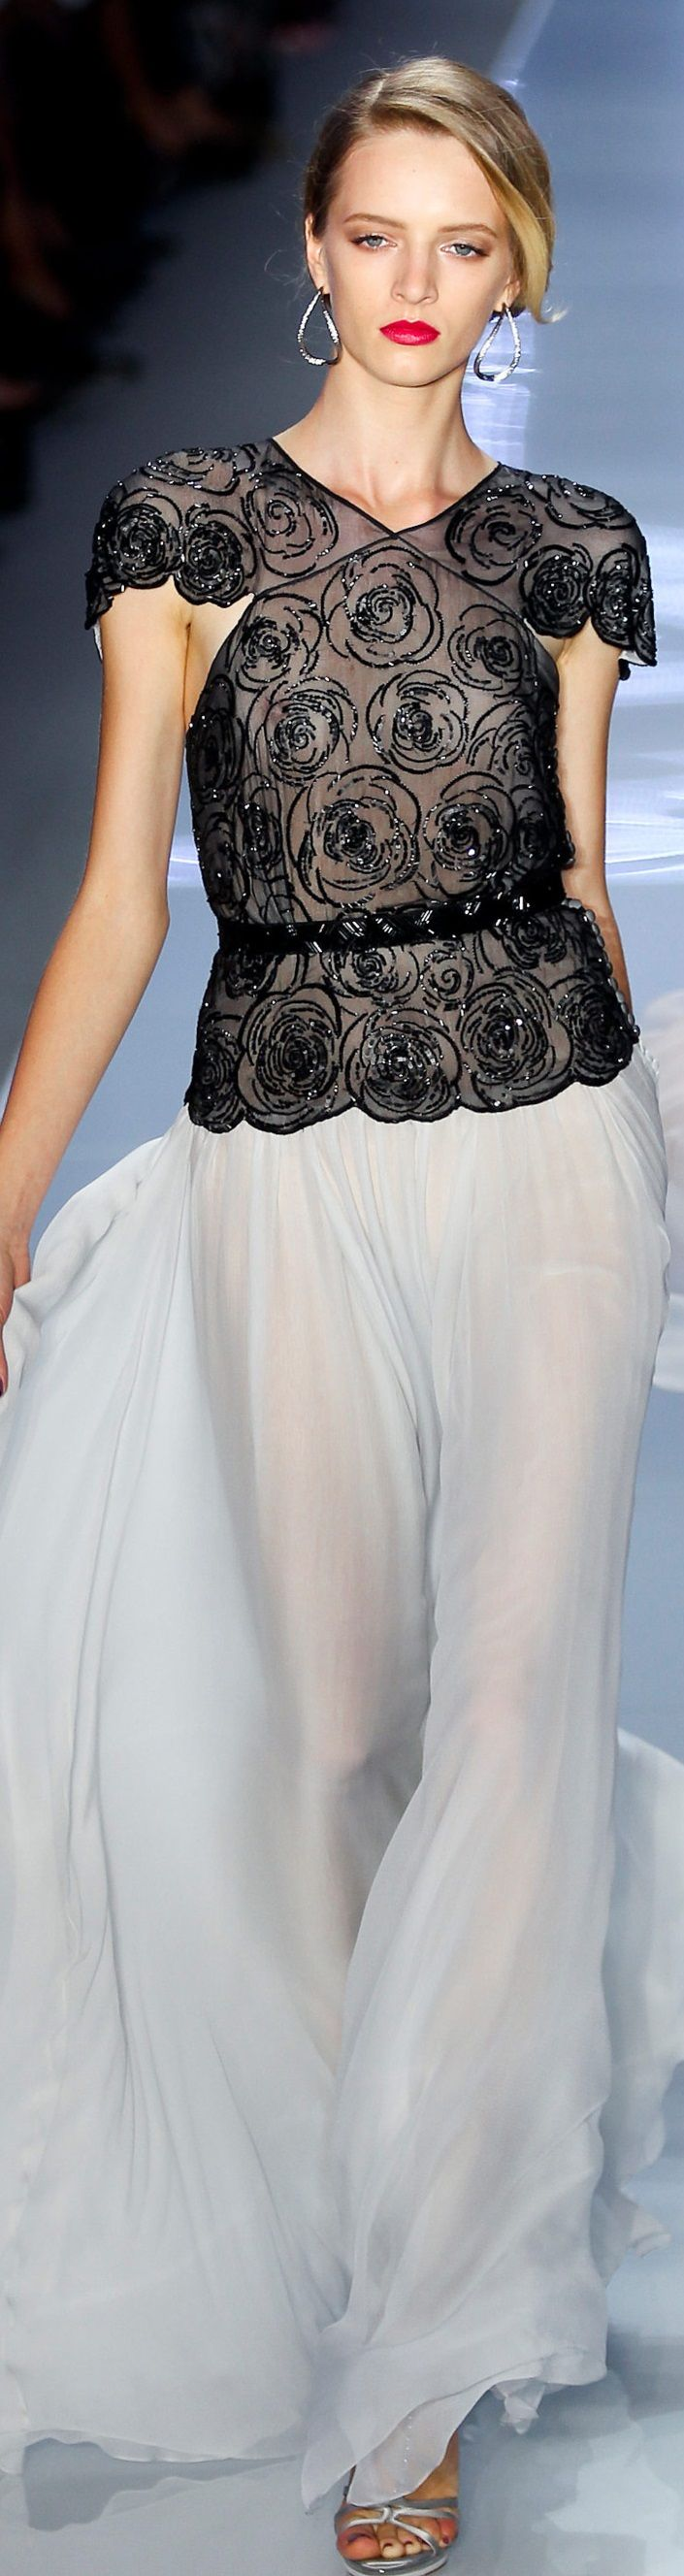 Christian Dior ~ Elegant Black Embroidered Sheer Top w White Sheer ...